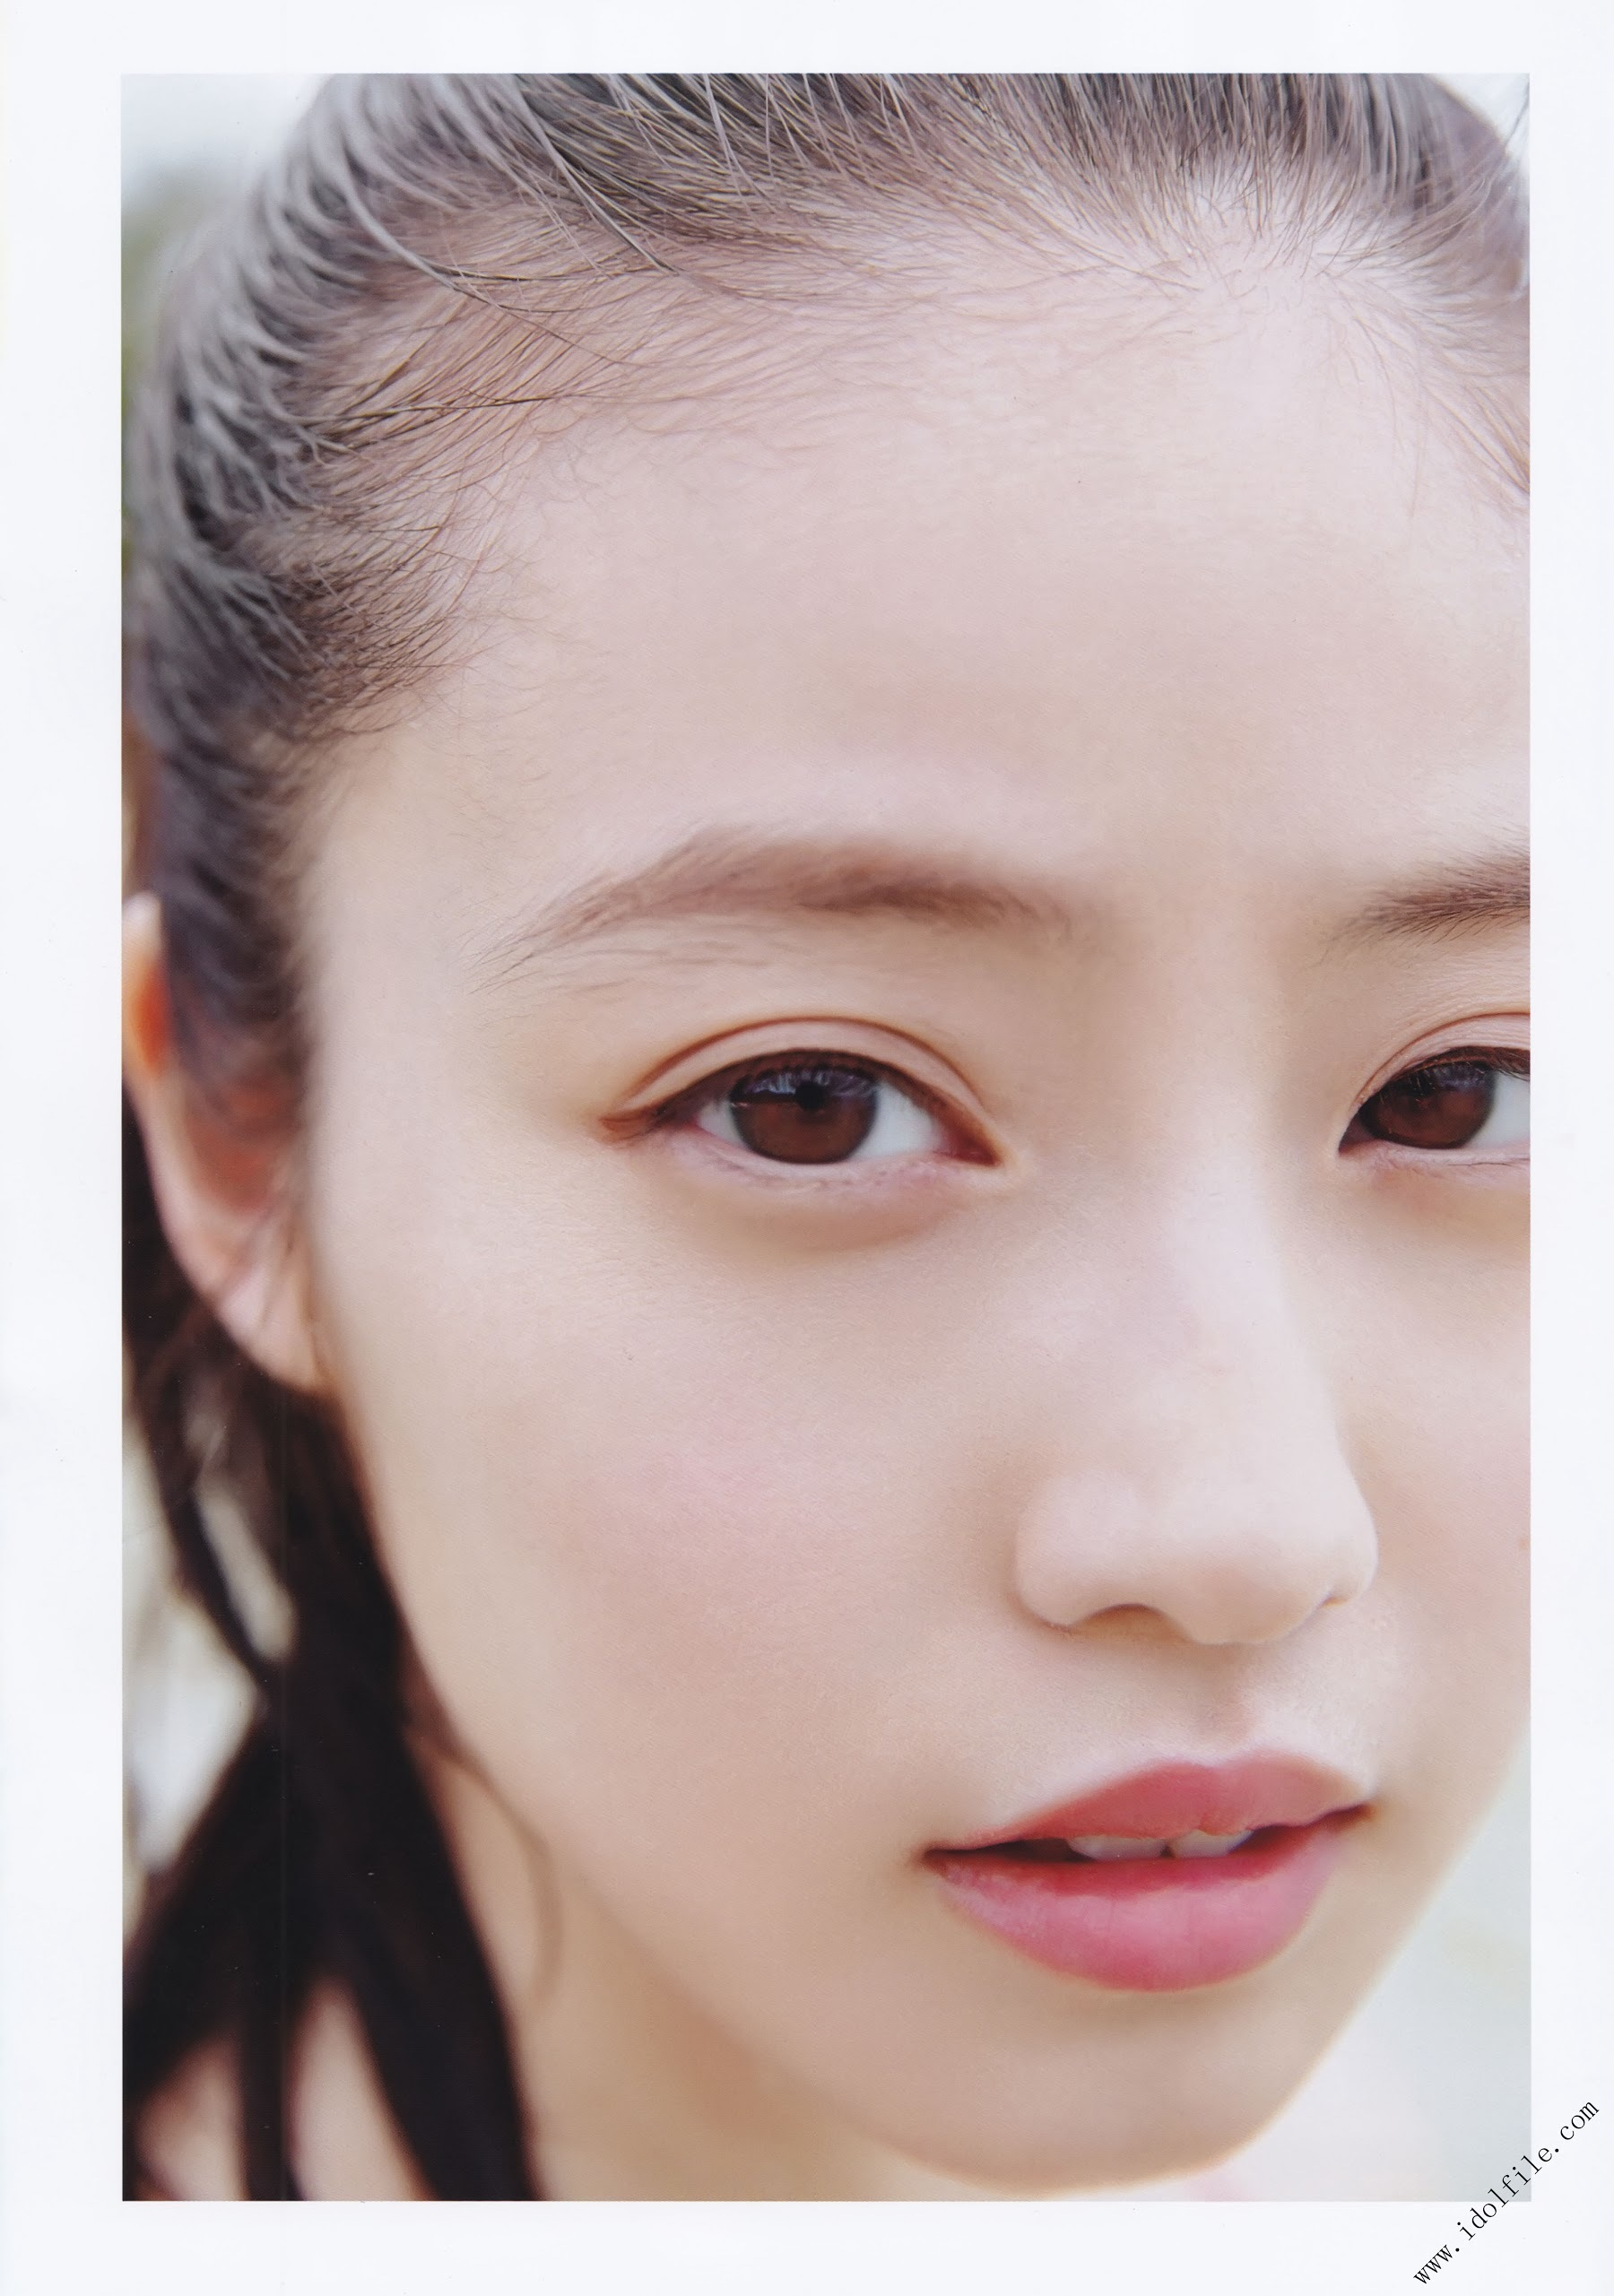 Pretty and beautiful, 22 years old and innocent Moving to the next stage as an actress Mio Imada096